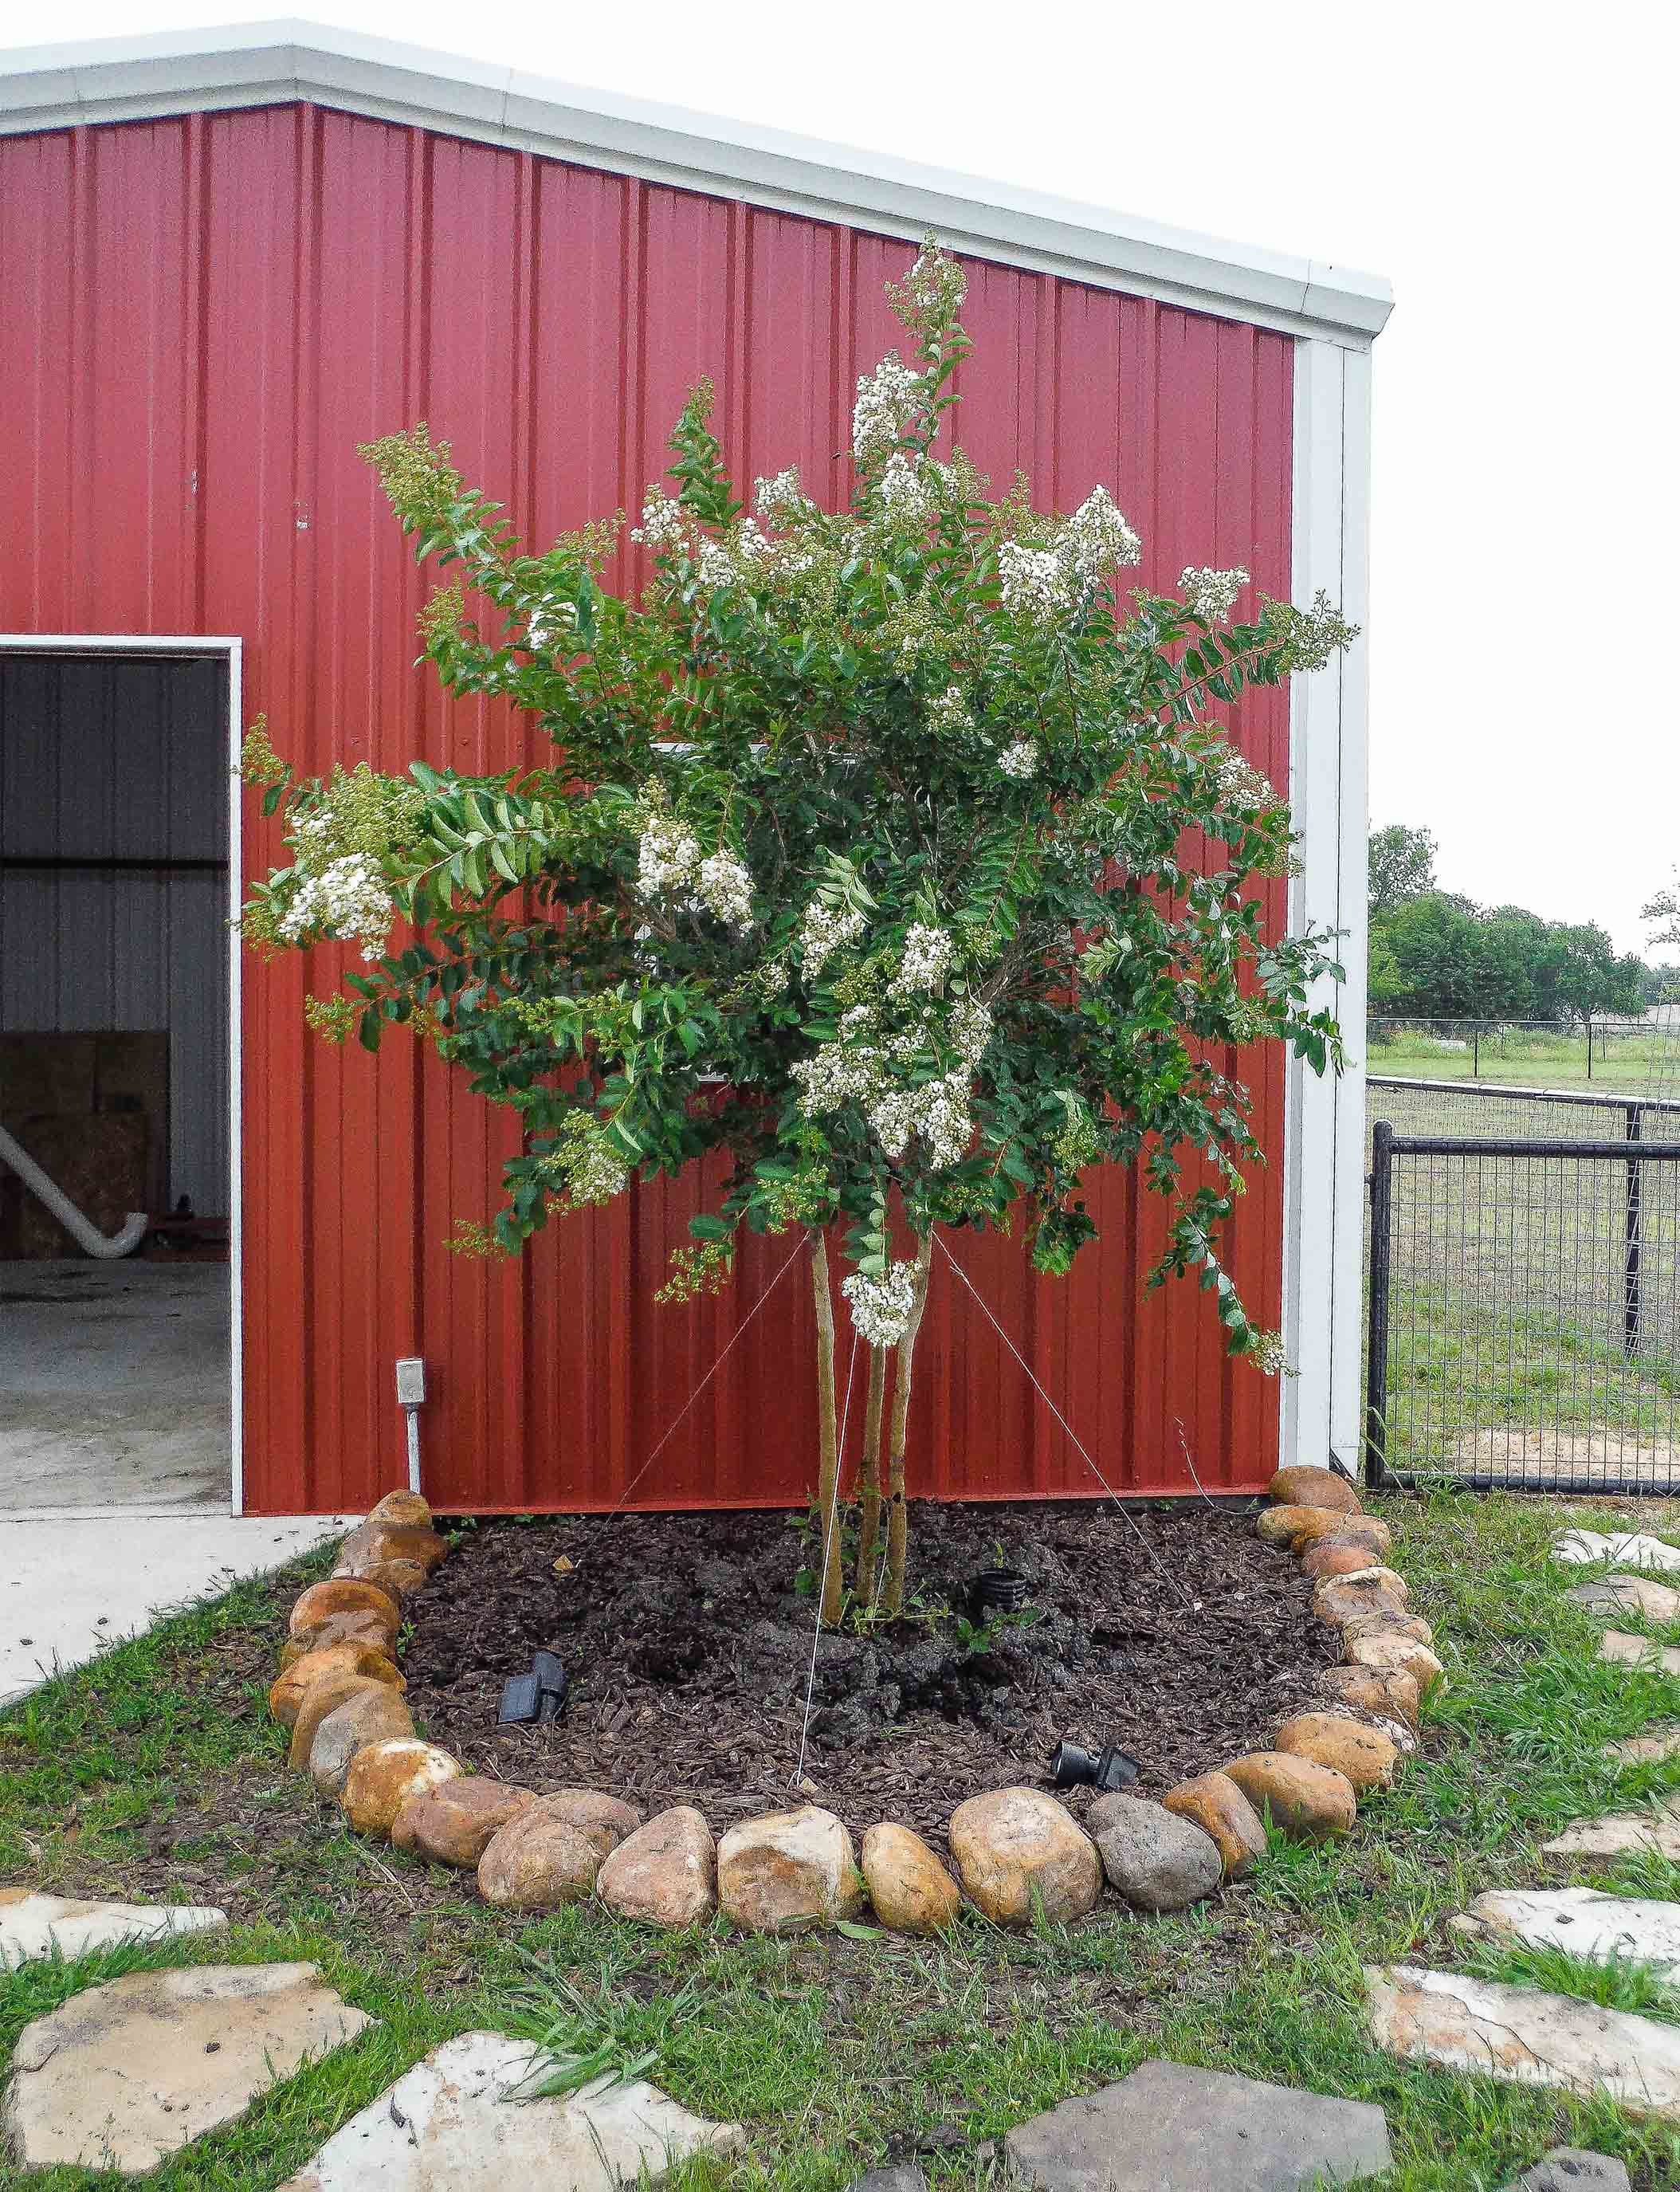 Natchez Crape Myrtle blooming with white flowers. Installed by Treeland Nursery.